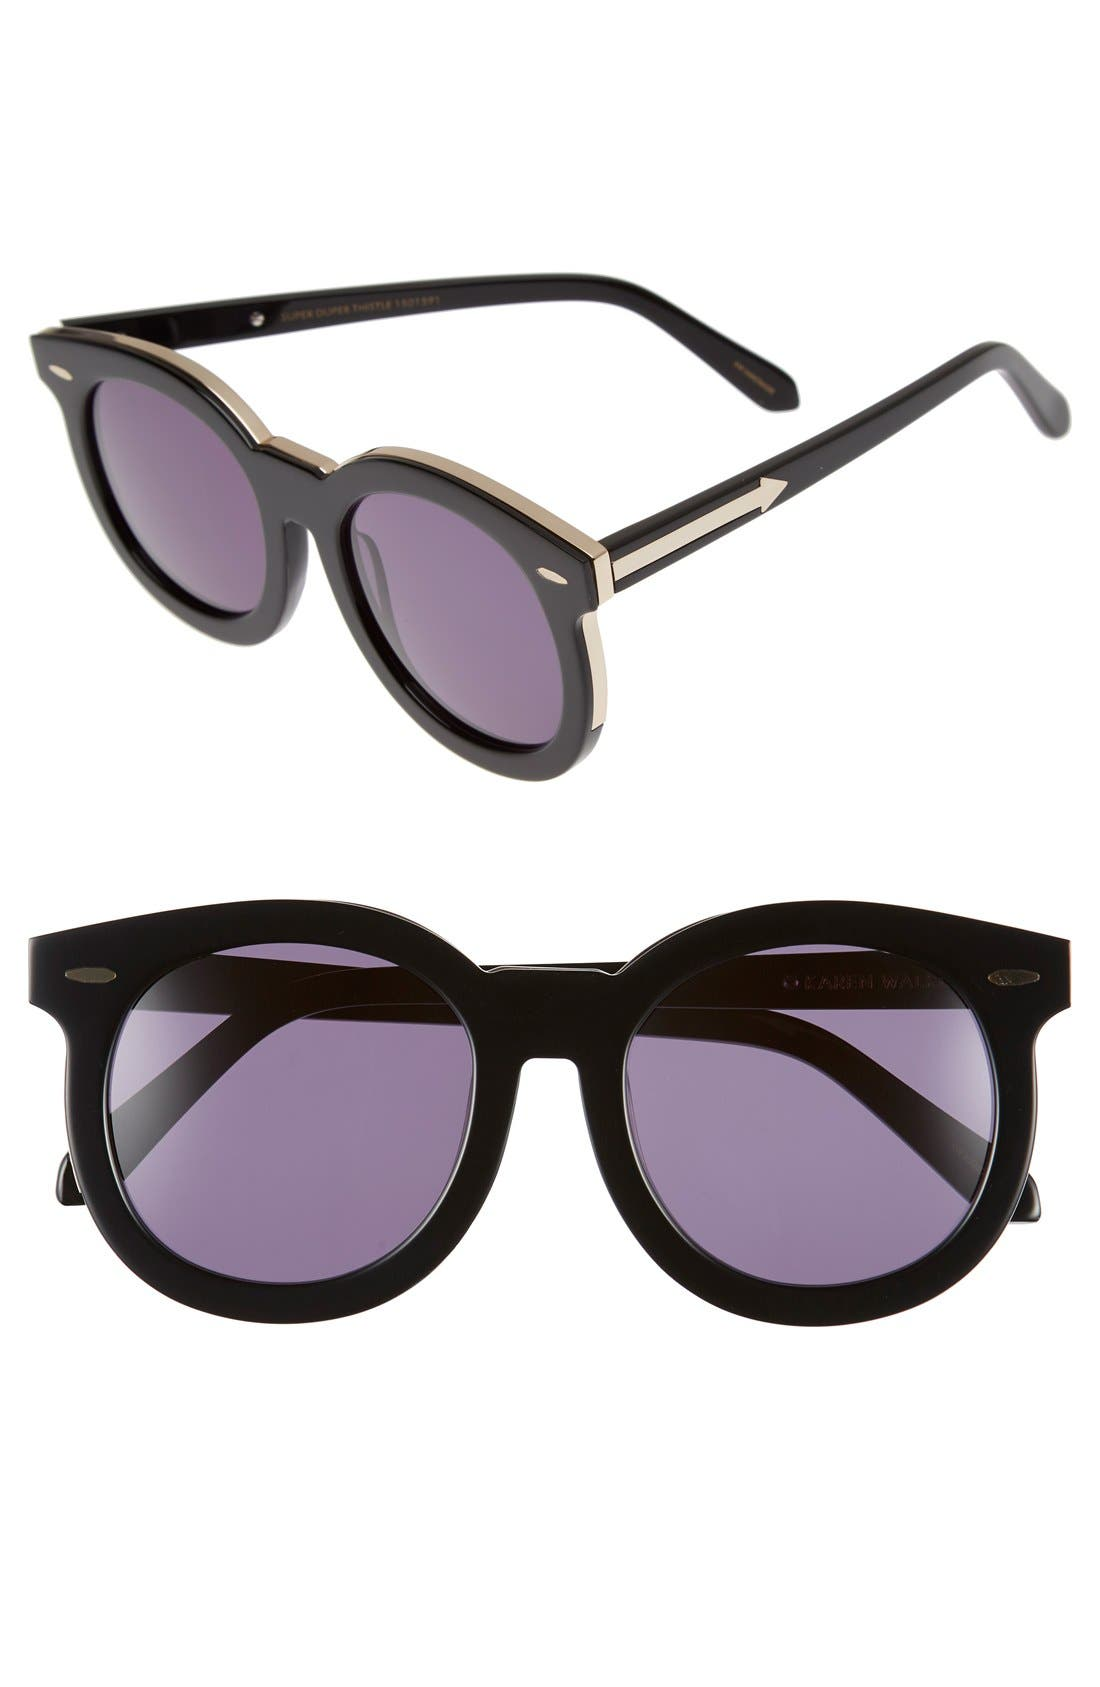 'Super Duper Thistle' 52mm Retro Sunglasses,                             Main thumbnail 1, color,                             001